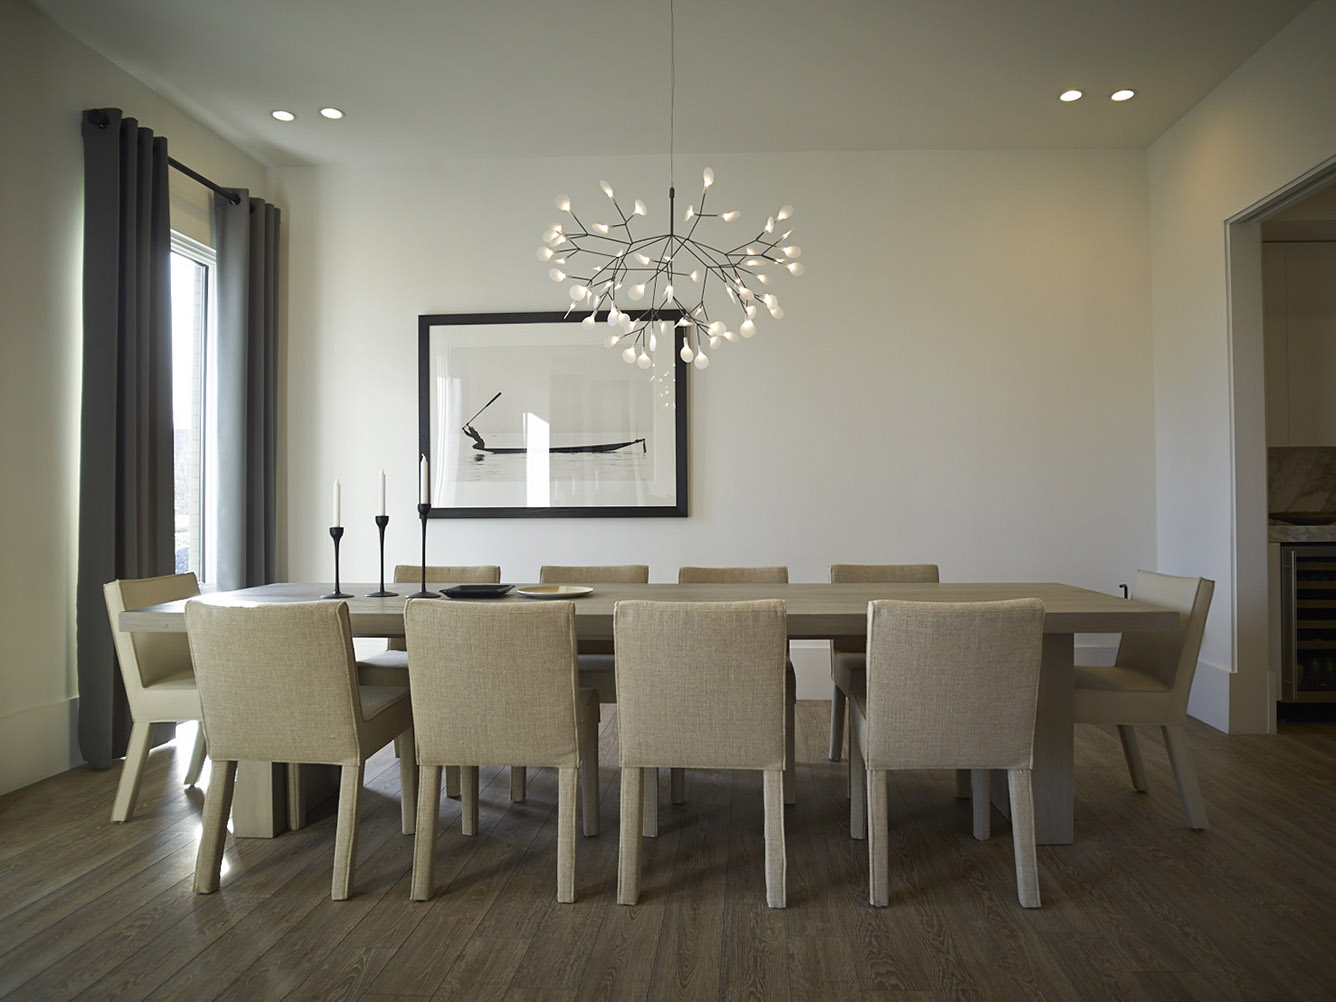 Hovnanian homes at Willowsford with GERRIT table and SAAR dining table